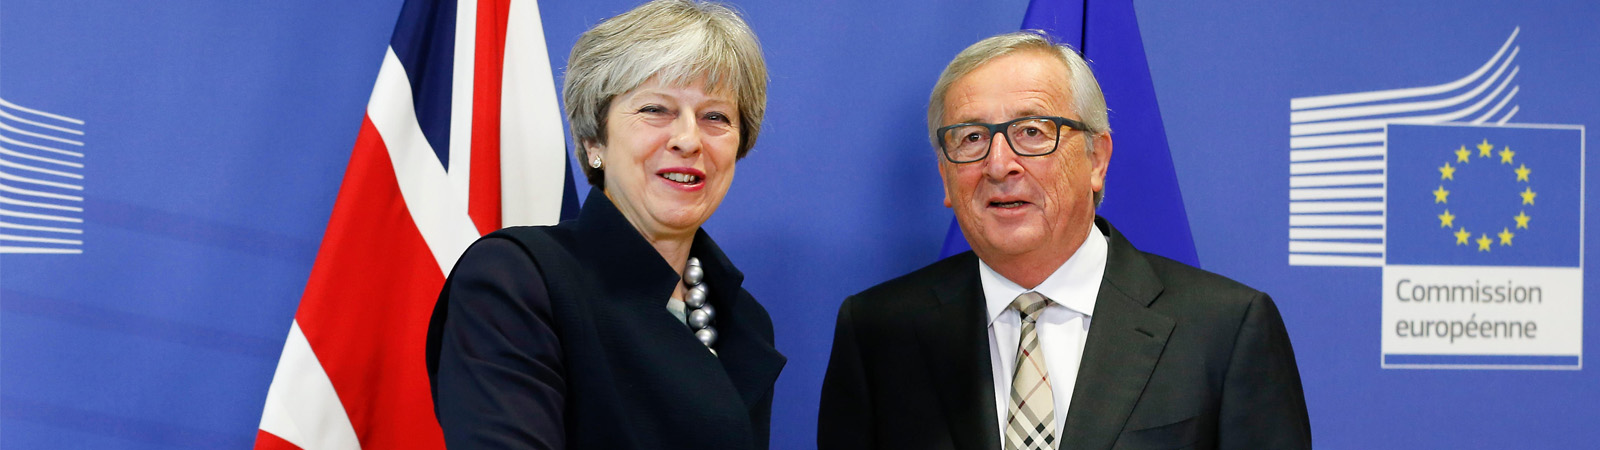 Prime Minister Theresa May and European Commission President Jean-Claude Juncker stand together